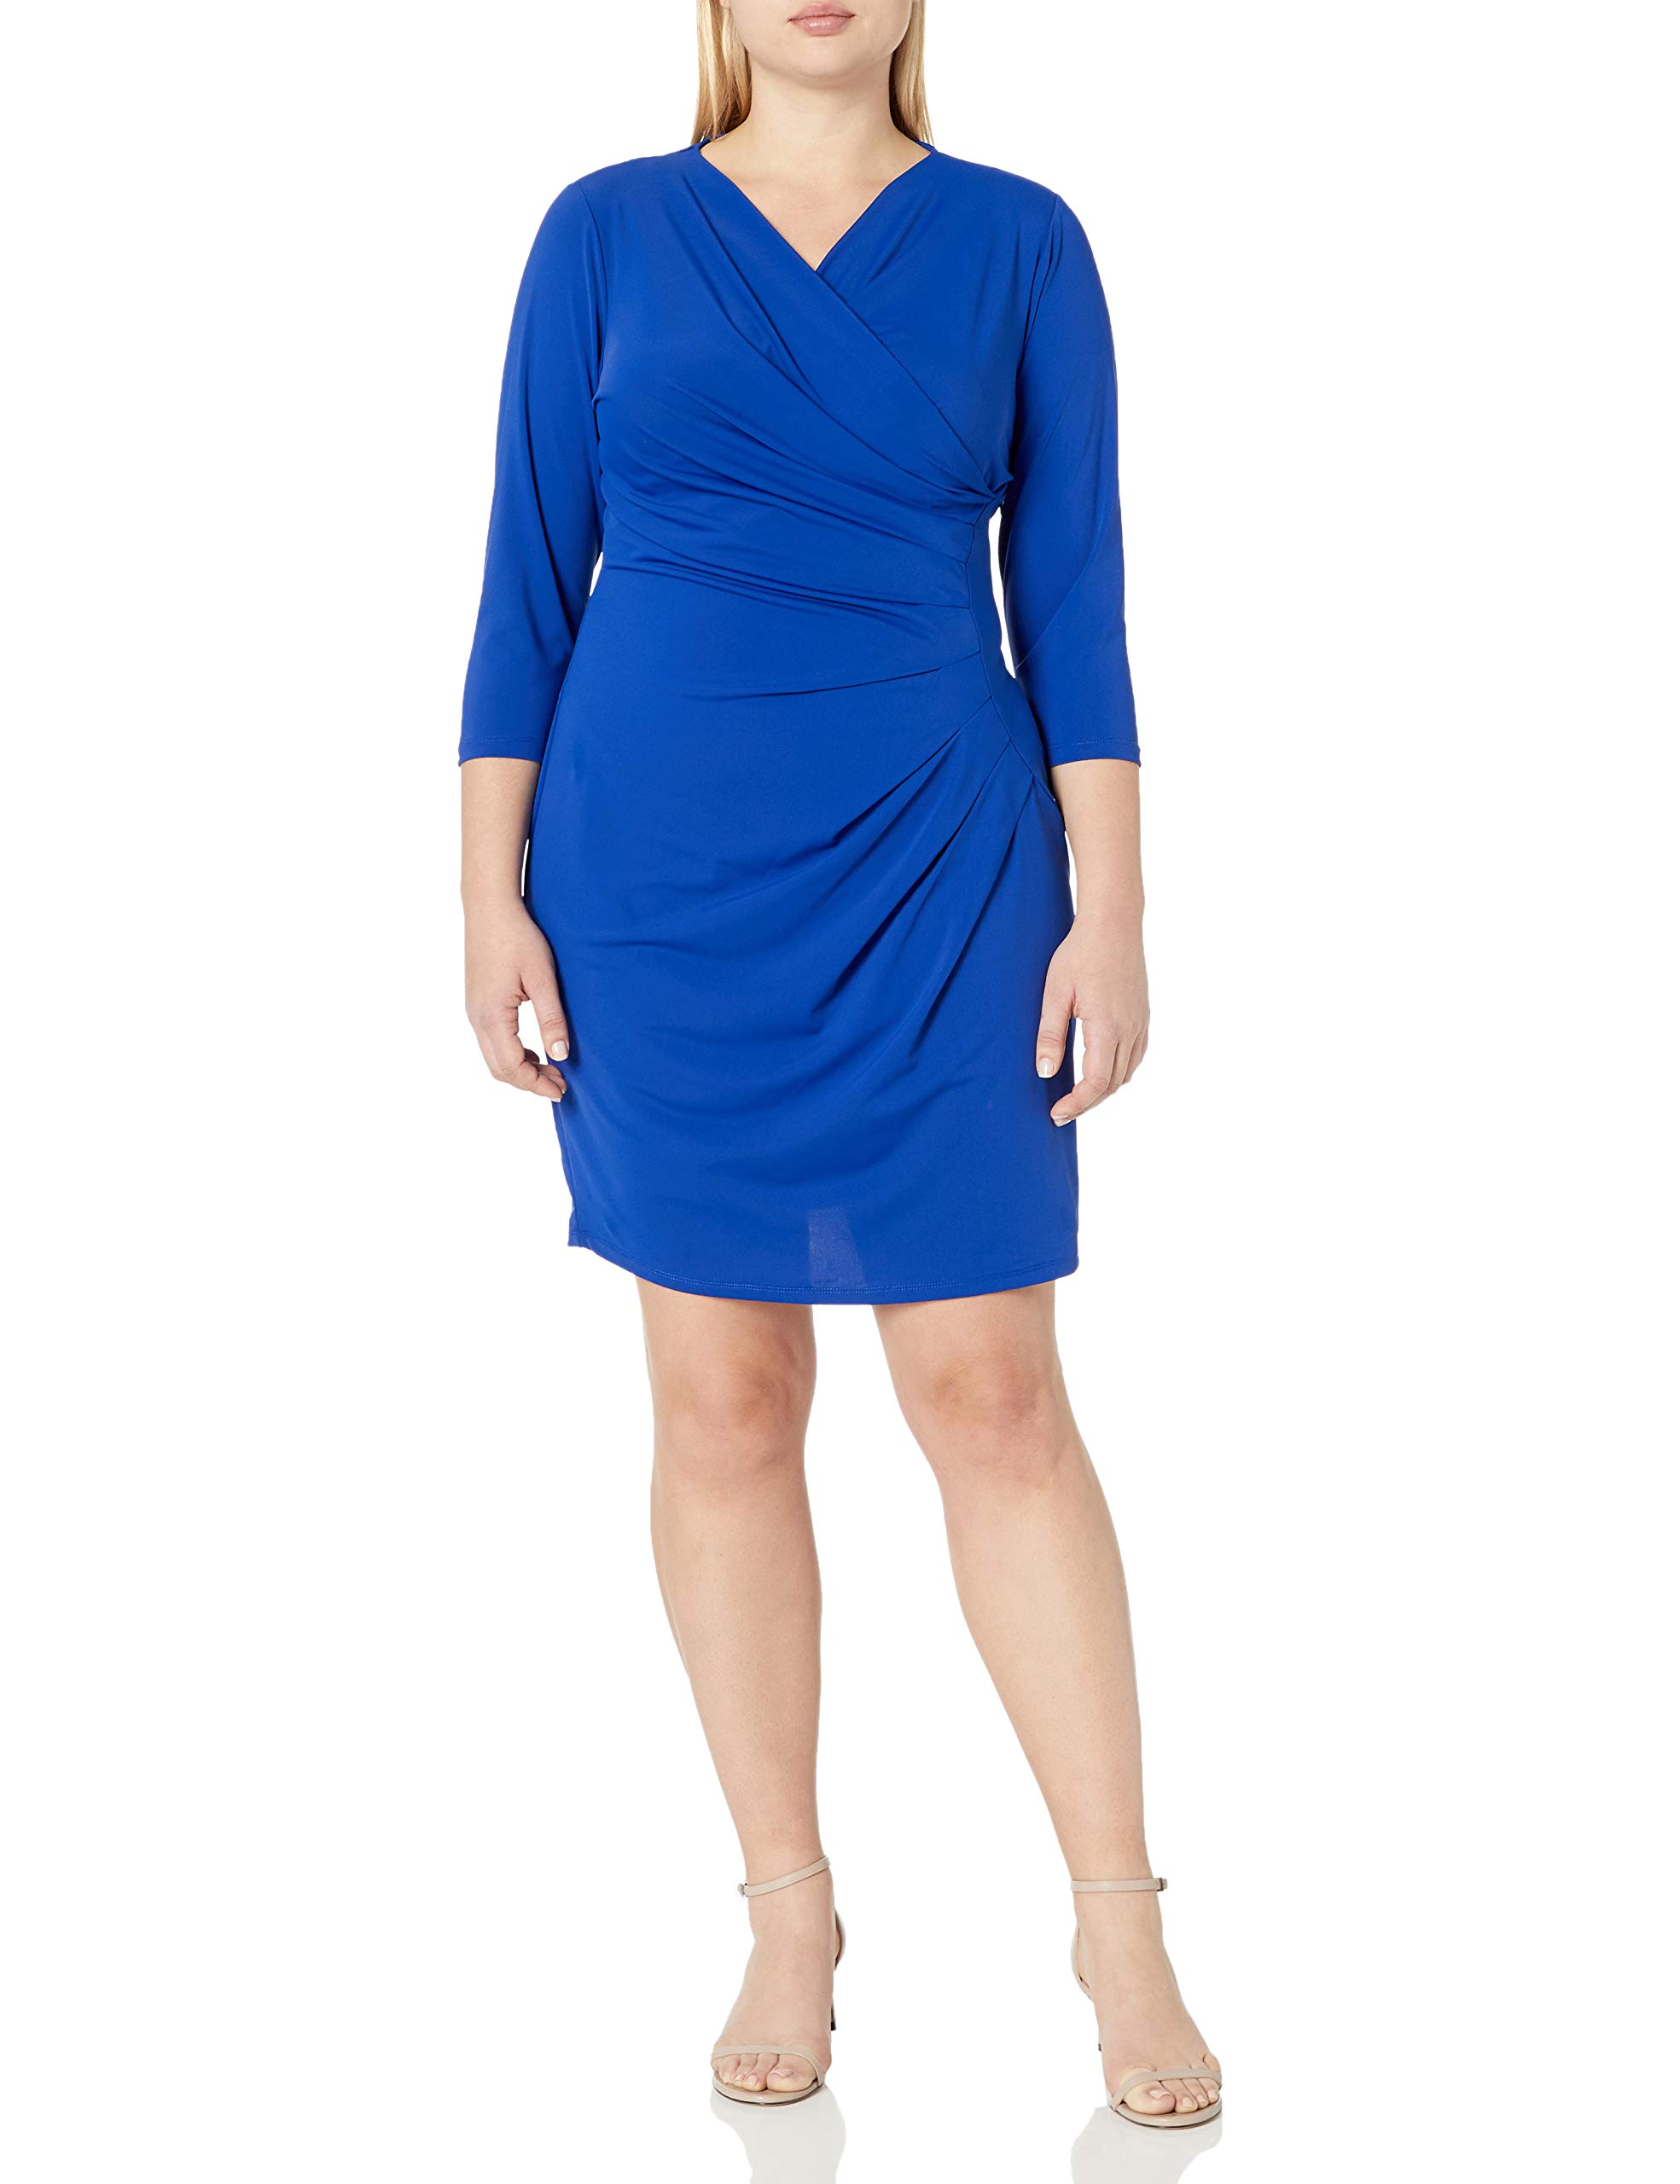 Adrianna Papell Women's Plus-Size V-Neck Three-Quarter Sleeve Faux-Wrap Dress